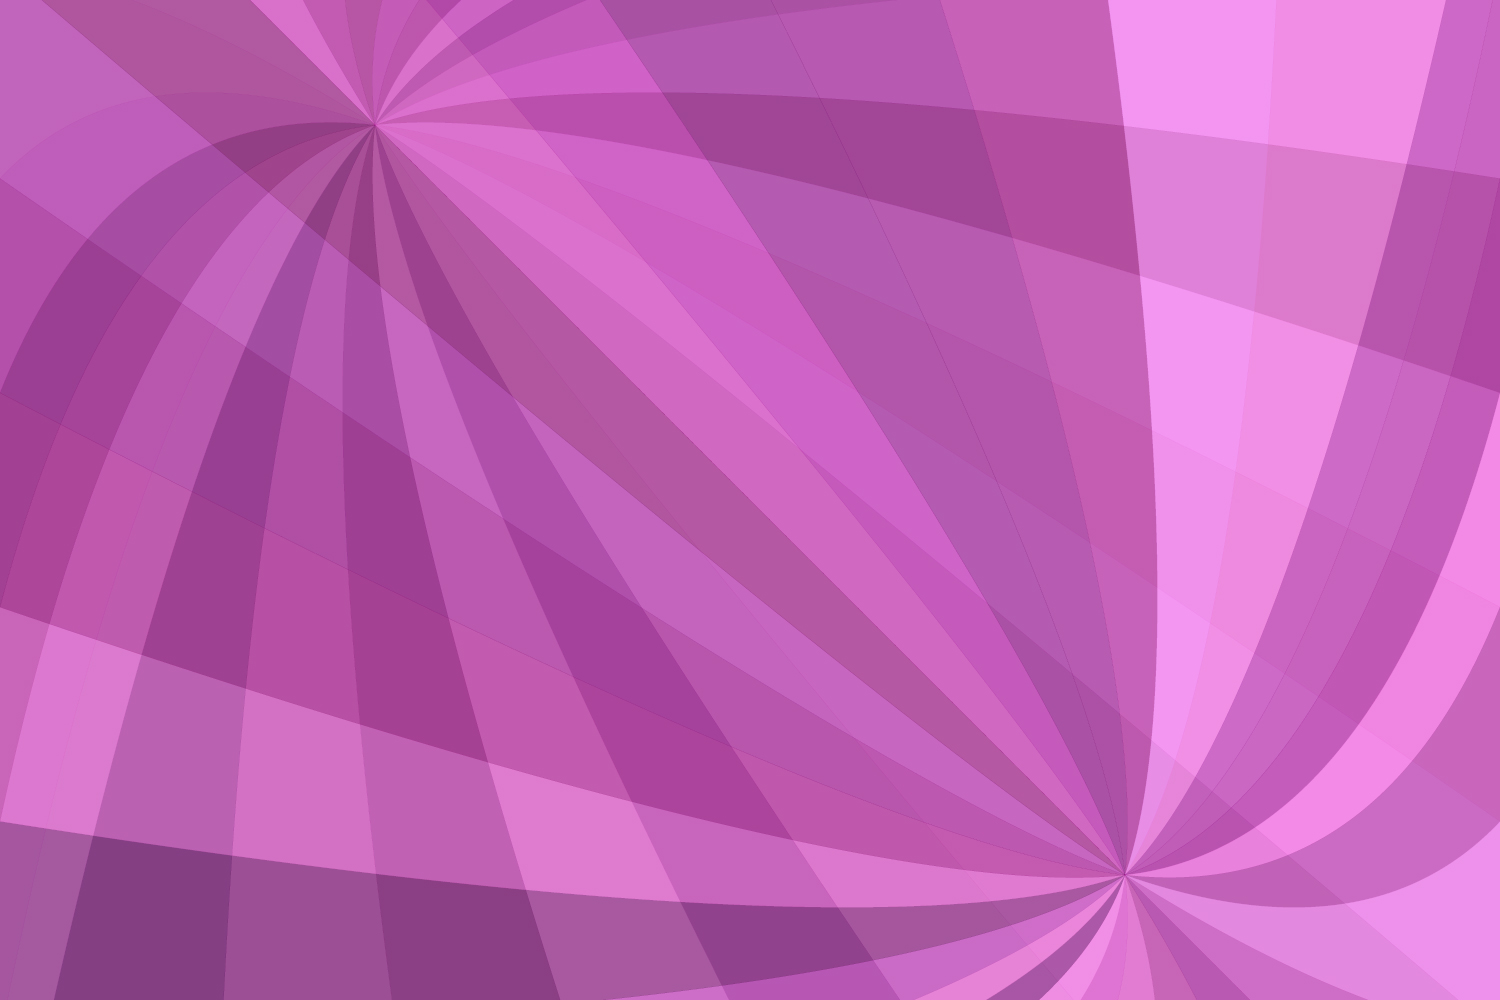 50 Curved Backgrounds (AI, EPS, JPG 5000x5000) example image 2